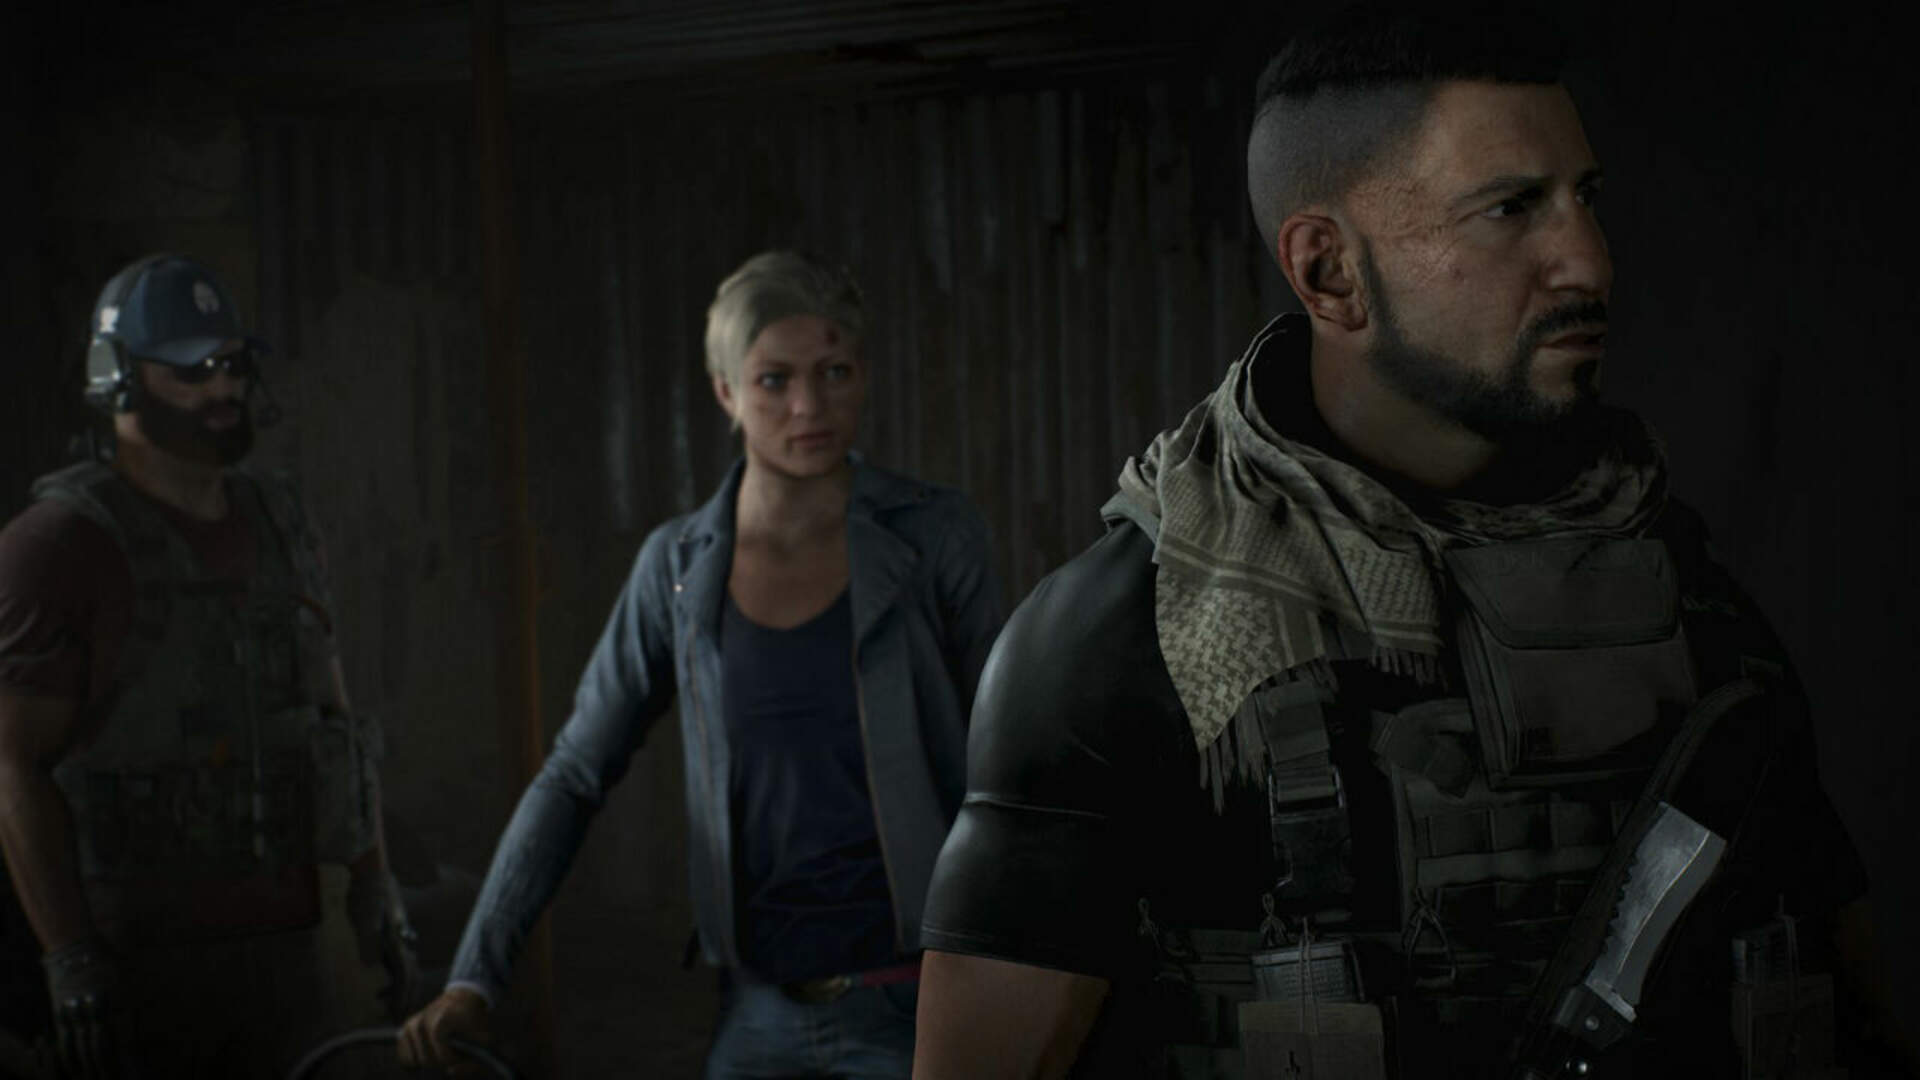 A Ghost Recon World Premiere is Coming Later This Week